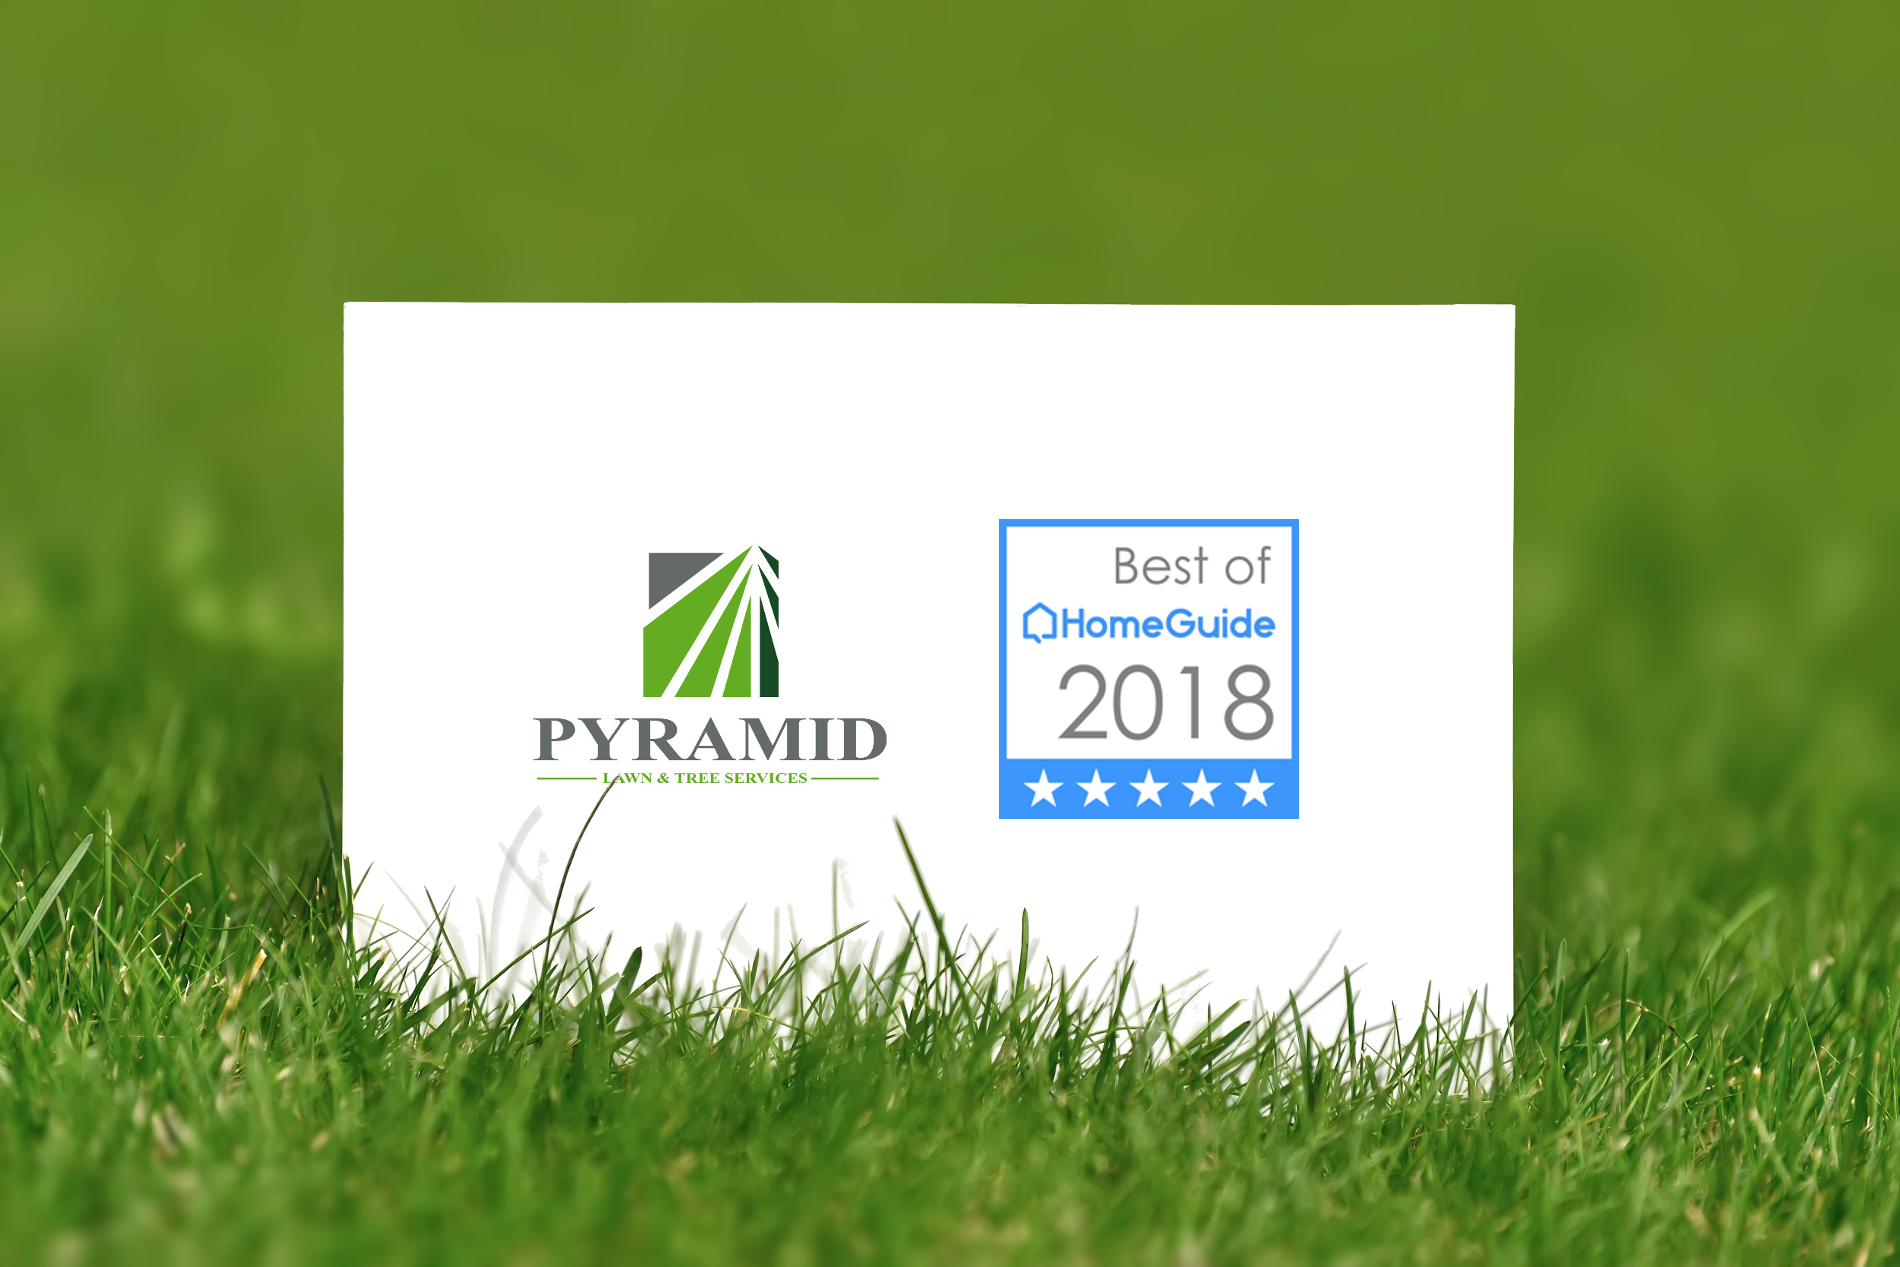 HomeGuide rates Pyramid as the Best lawn care provider in